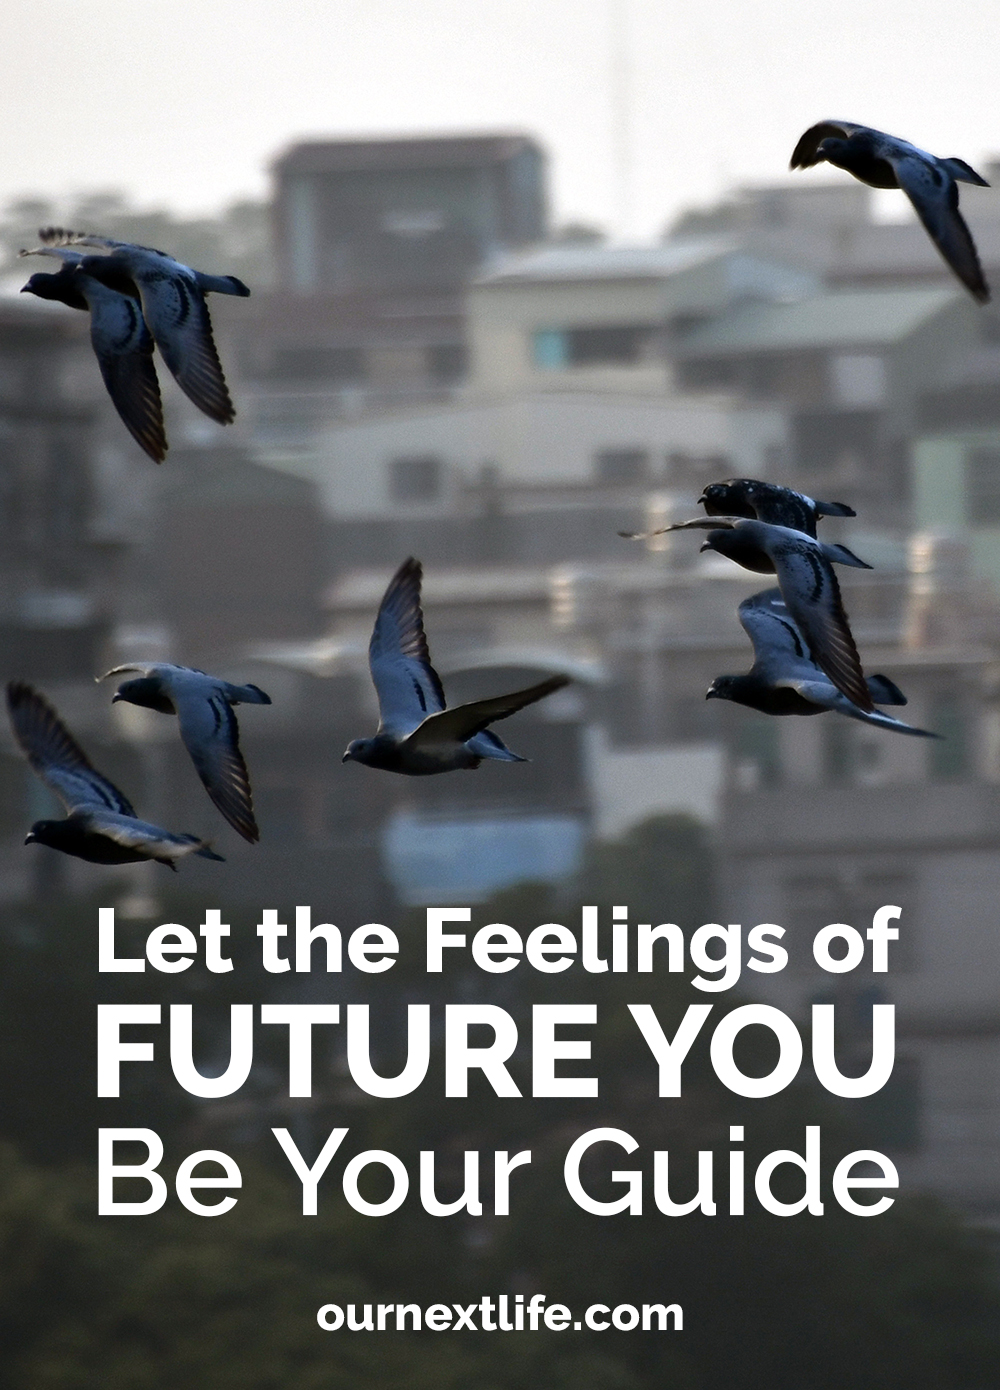 Let the Feelings of Future You Be Your Guide // OurNextLife.com // early retirement, financial independence, adventure, happiness, spending decisions, needs vs. wants